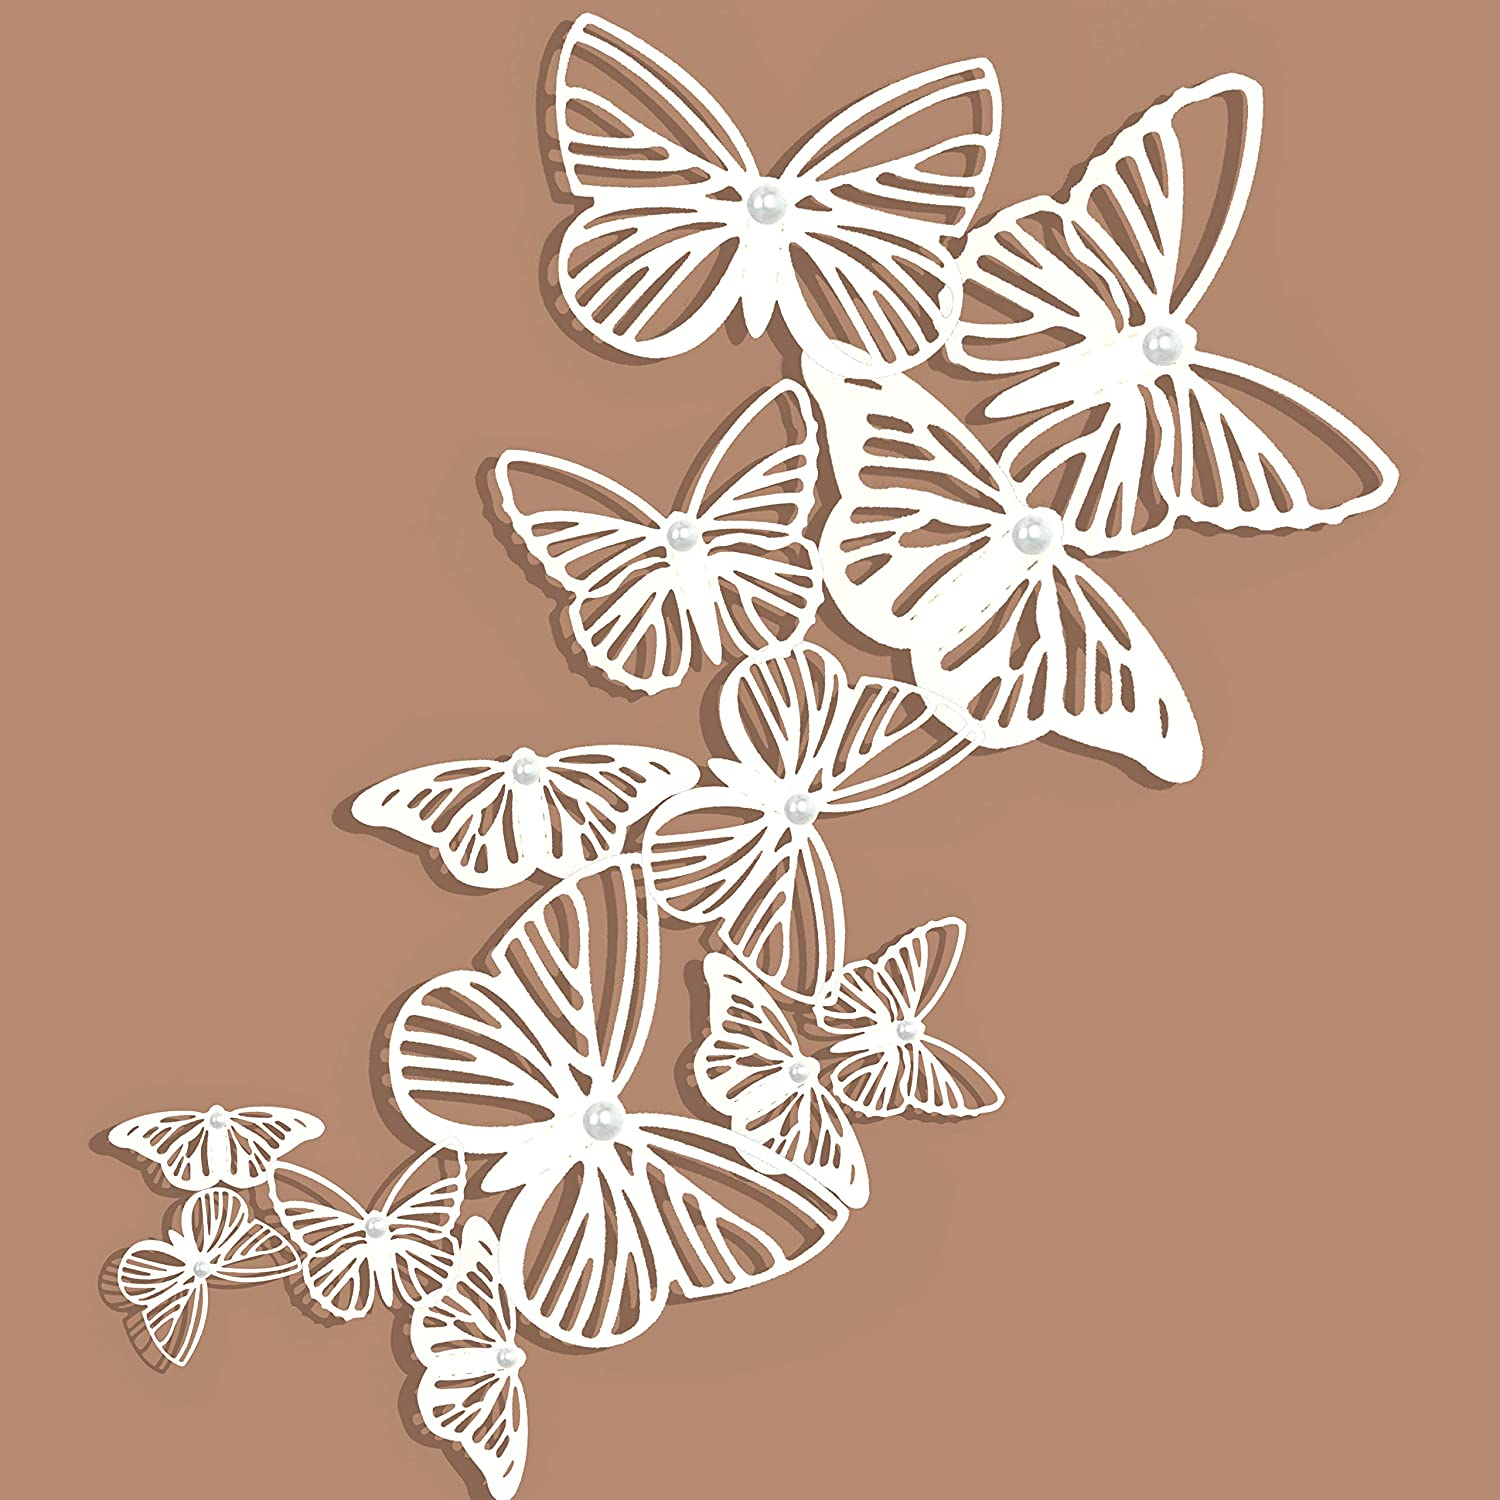 pinkblume White Butterflies Decorations 3D Butterflies Wall Art Decals Stickers DIY Removable Paper Pearl Butterfly for Kids Room Living Room Nursery Bedroom Showcase Wall Decor(36PCS)